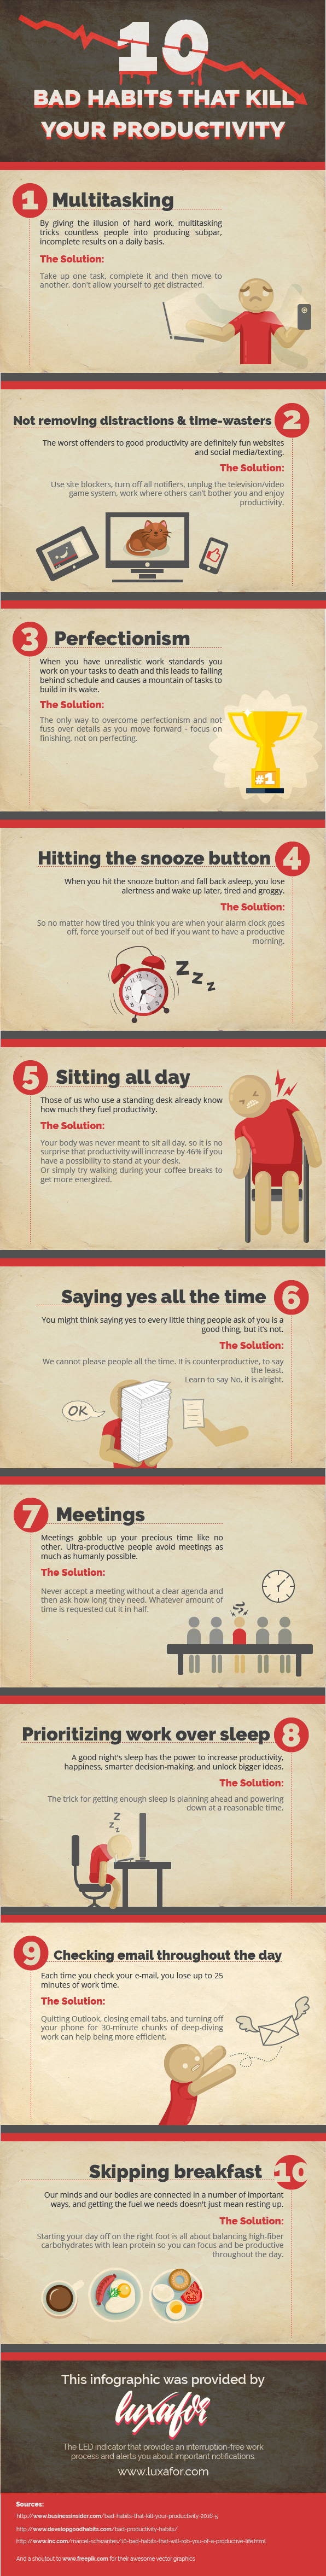 10 Bad Habits That Kill Your Productivity #Infographic